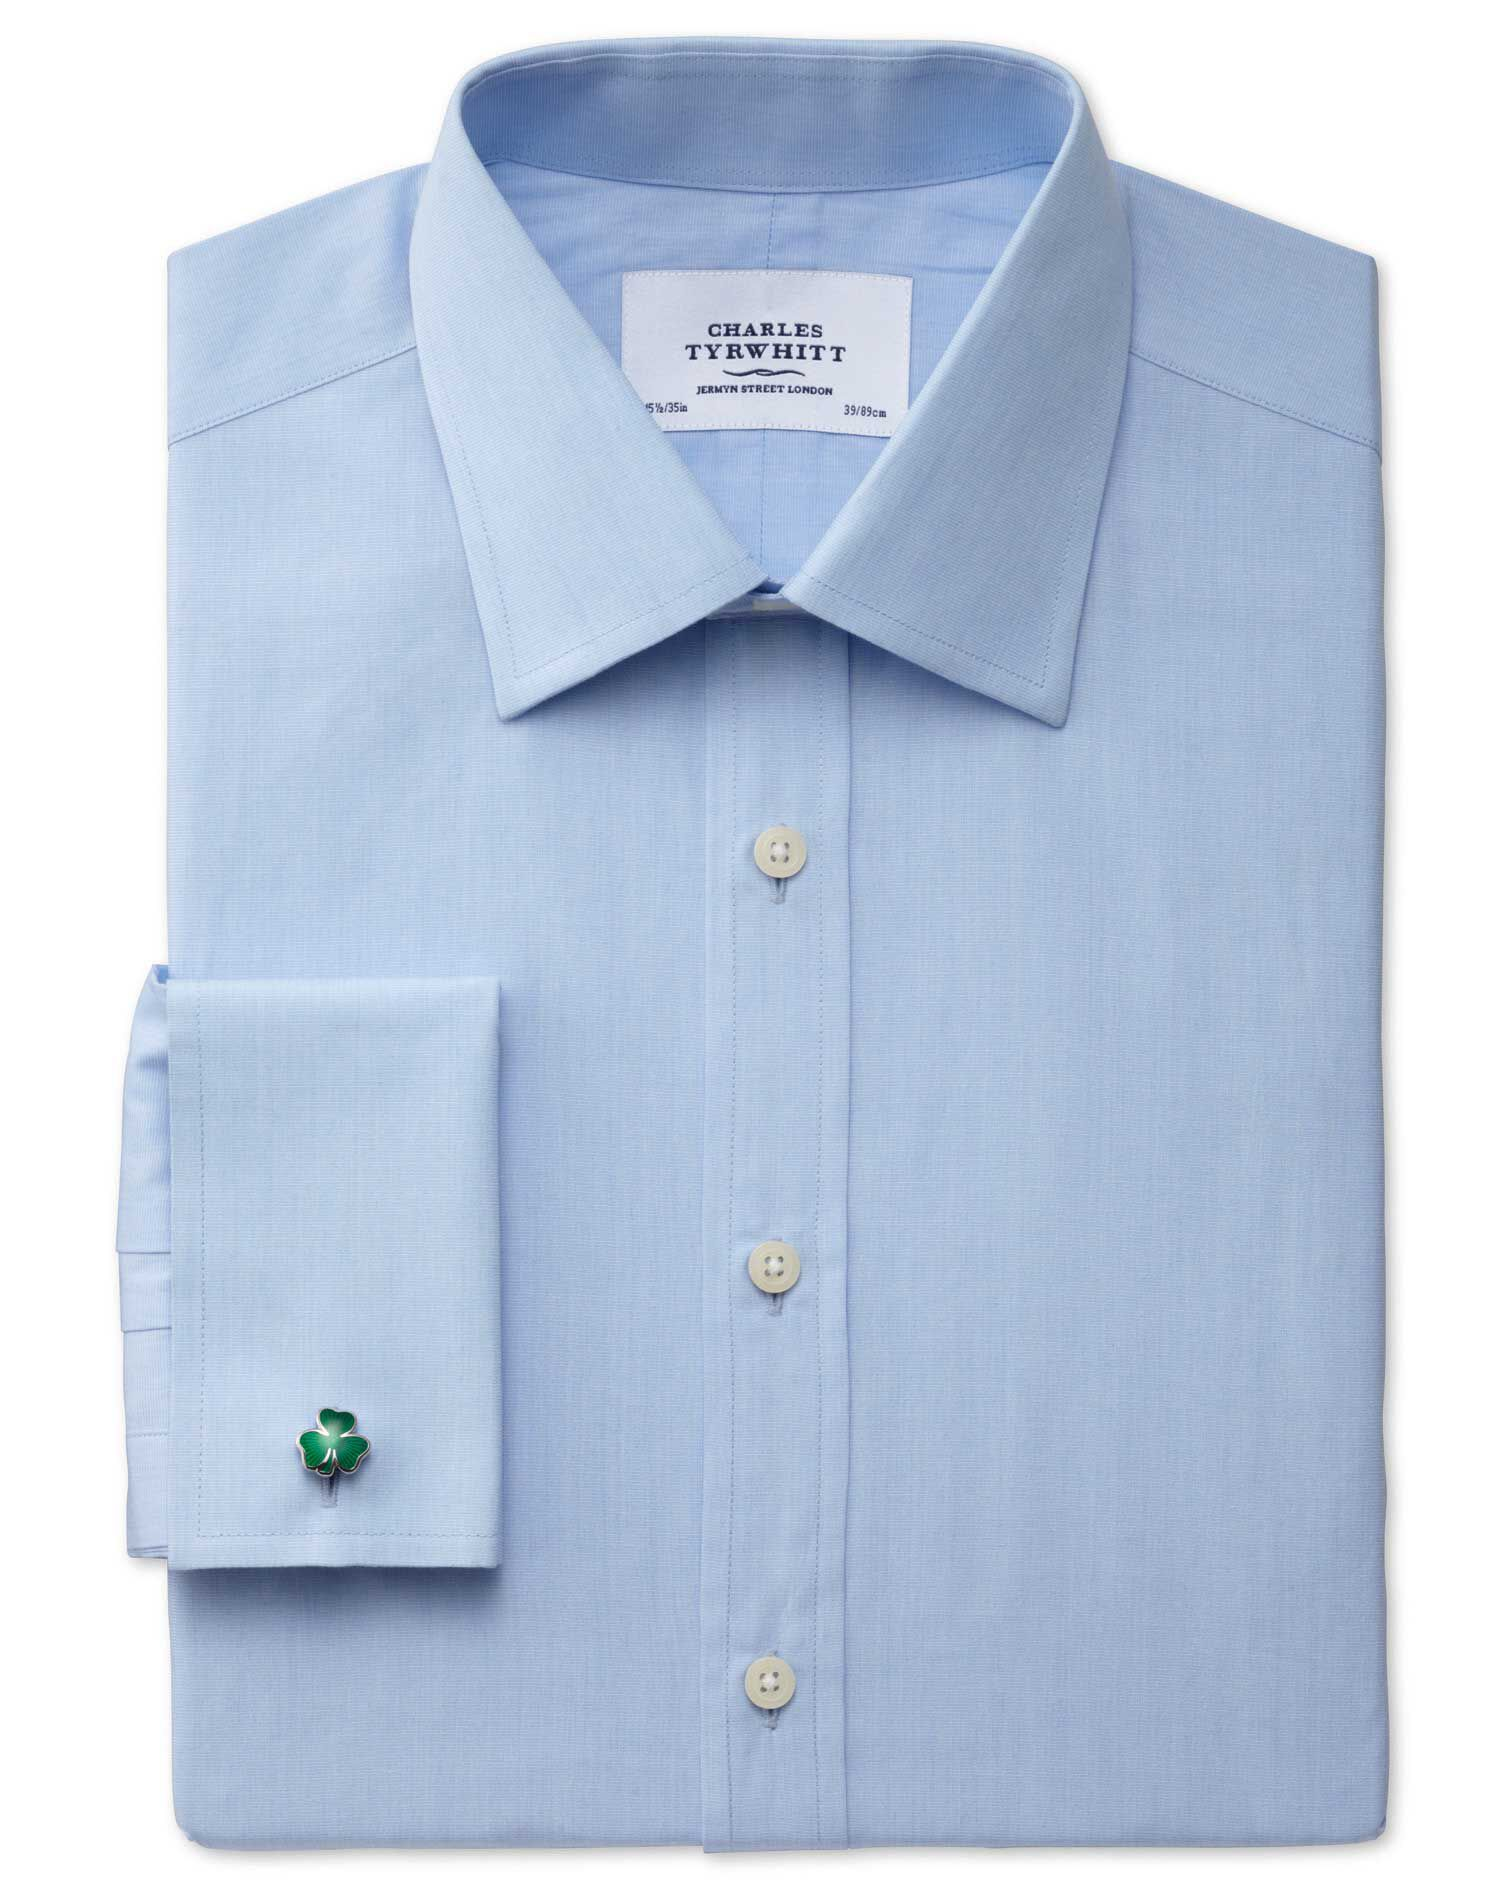 Extra Slim Fit End-On-End Sky Blue Cotton Formal Shirt Double Cuff Size 15/33 by Charles Tyrwhitt